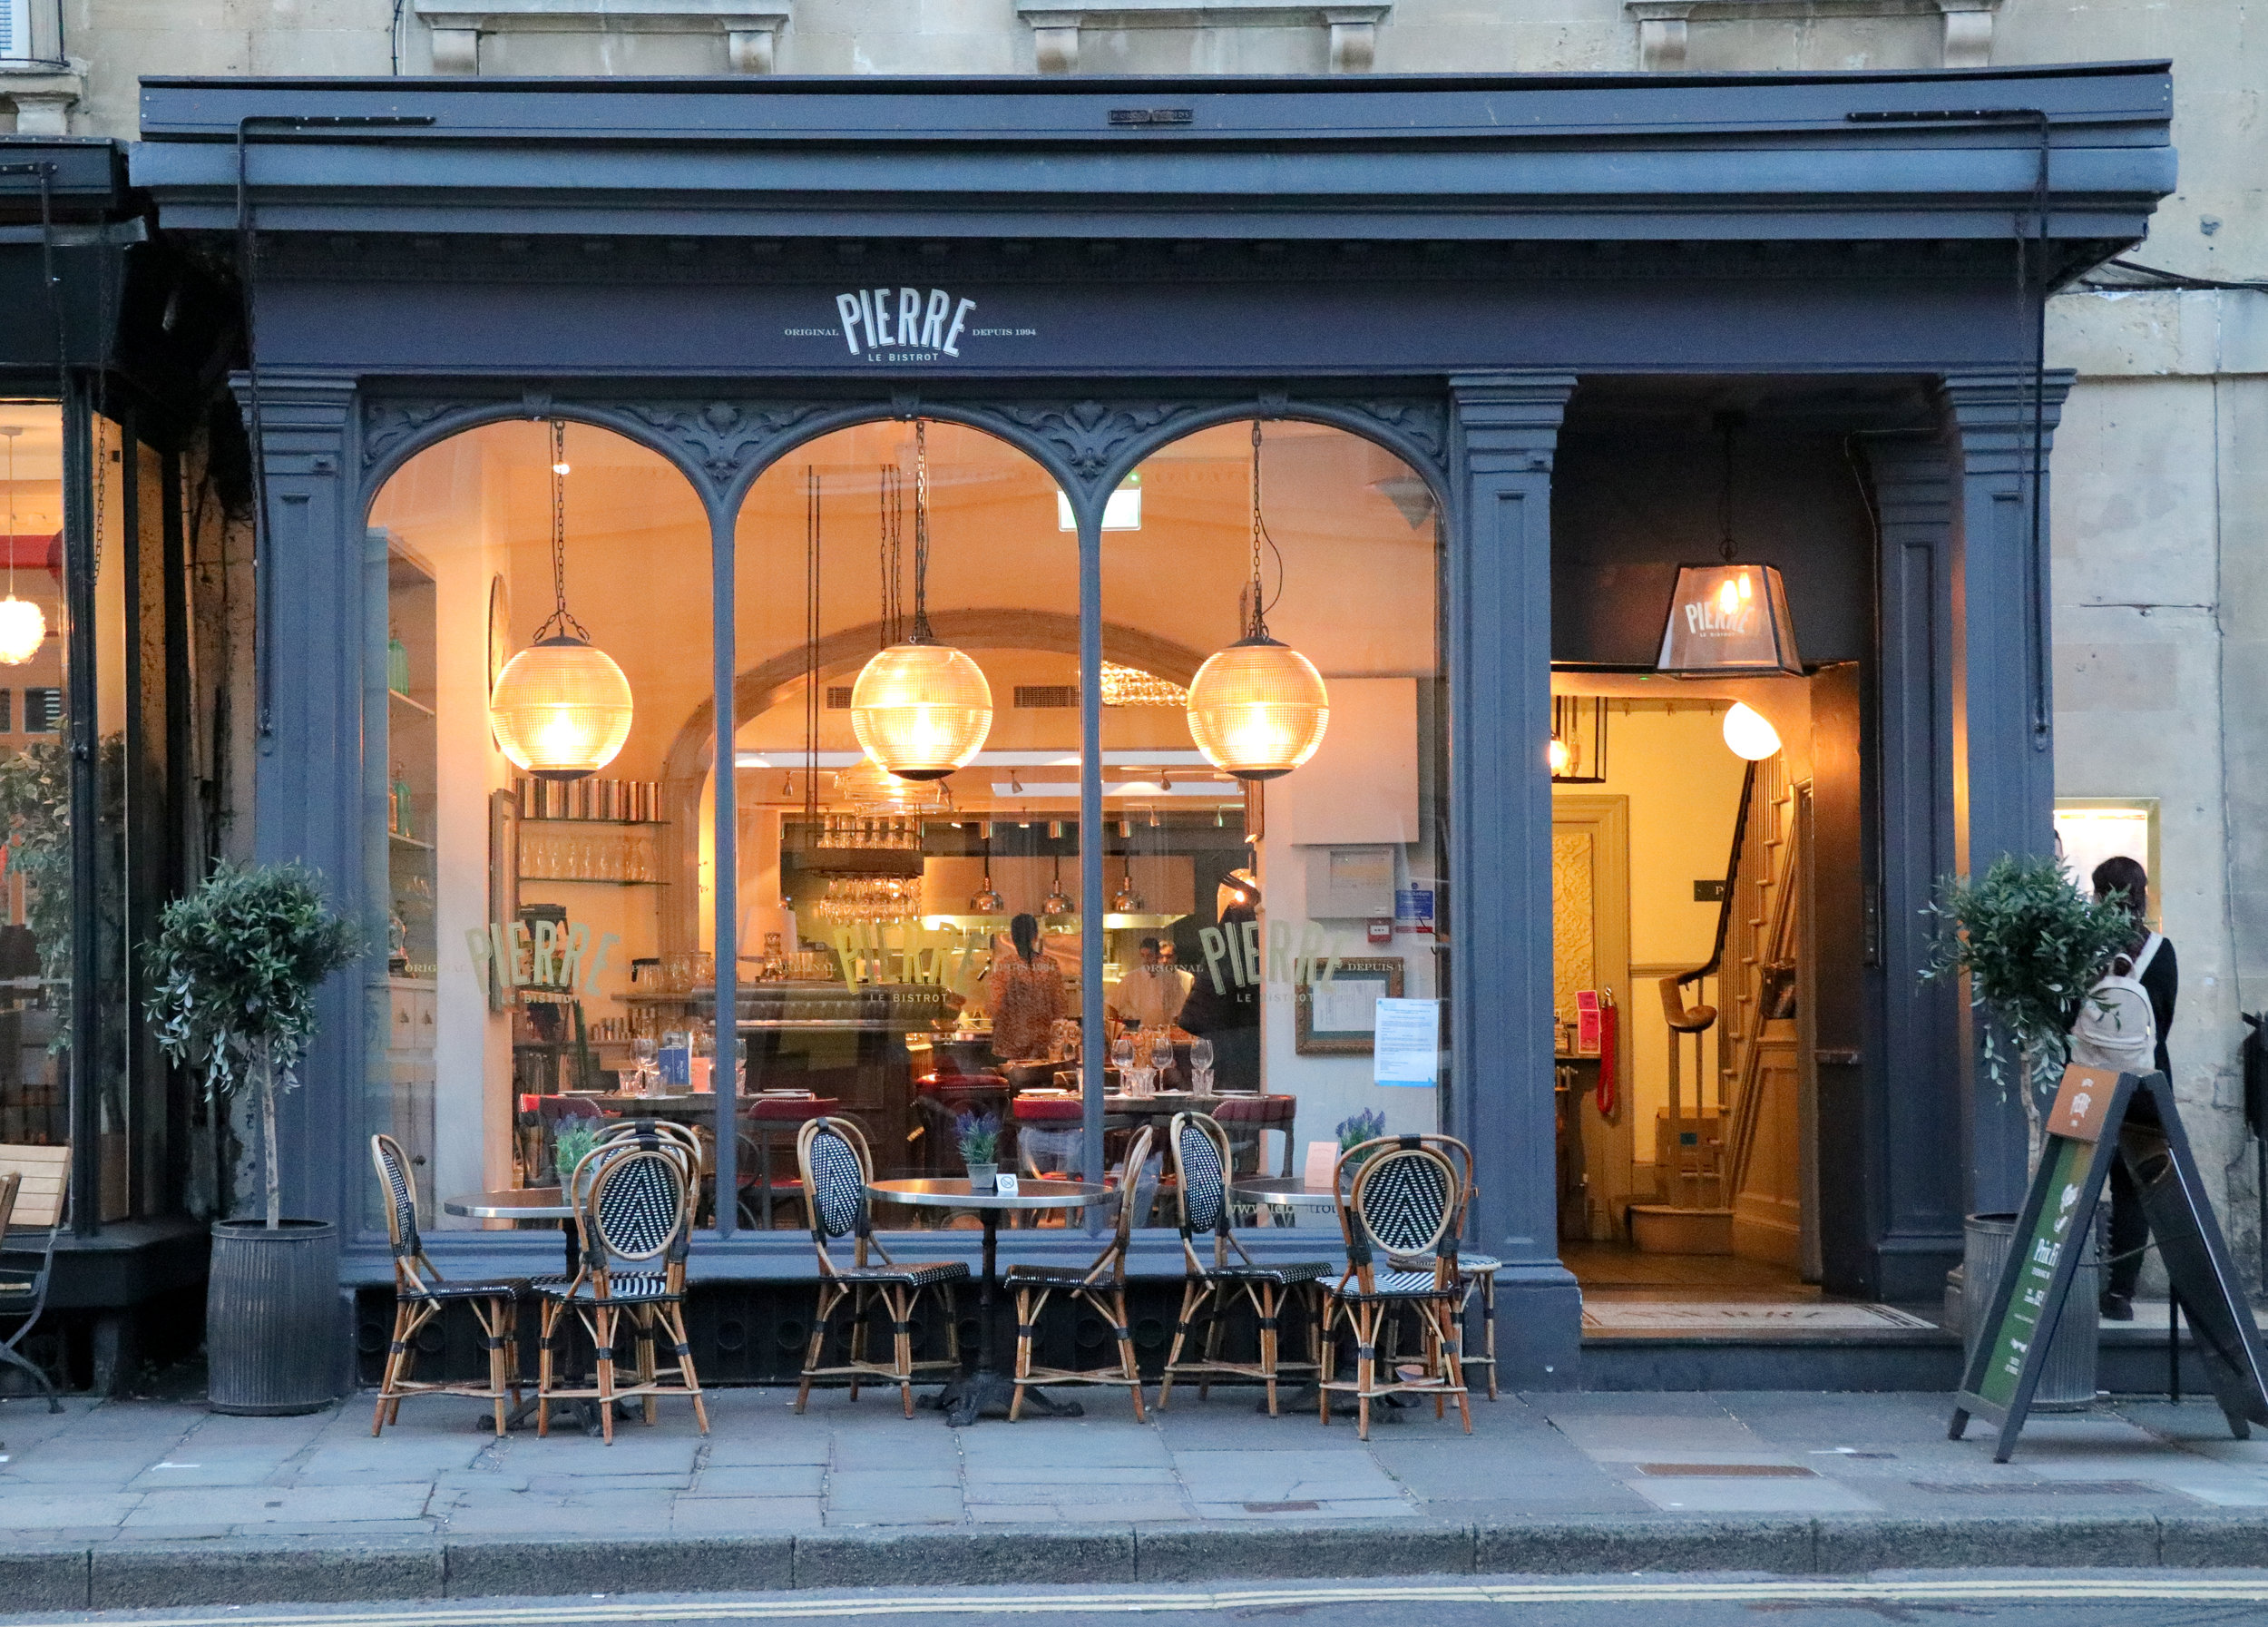 Bistrot Pierre - Bath - 15th May 2018